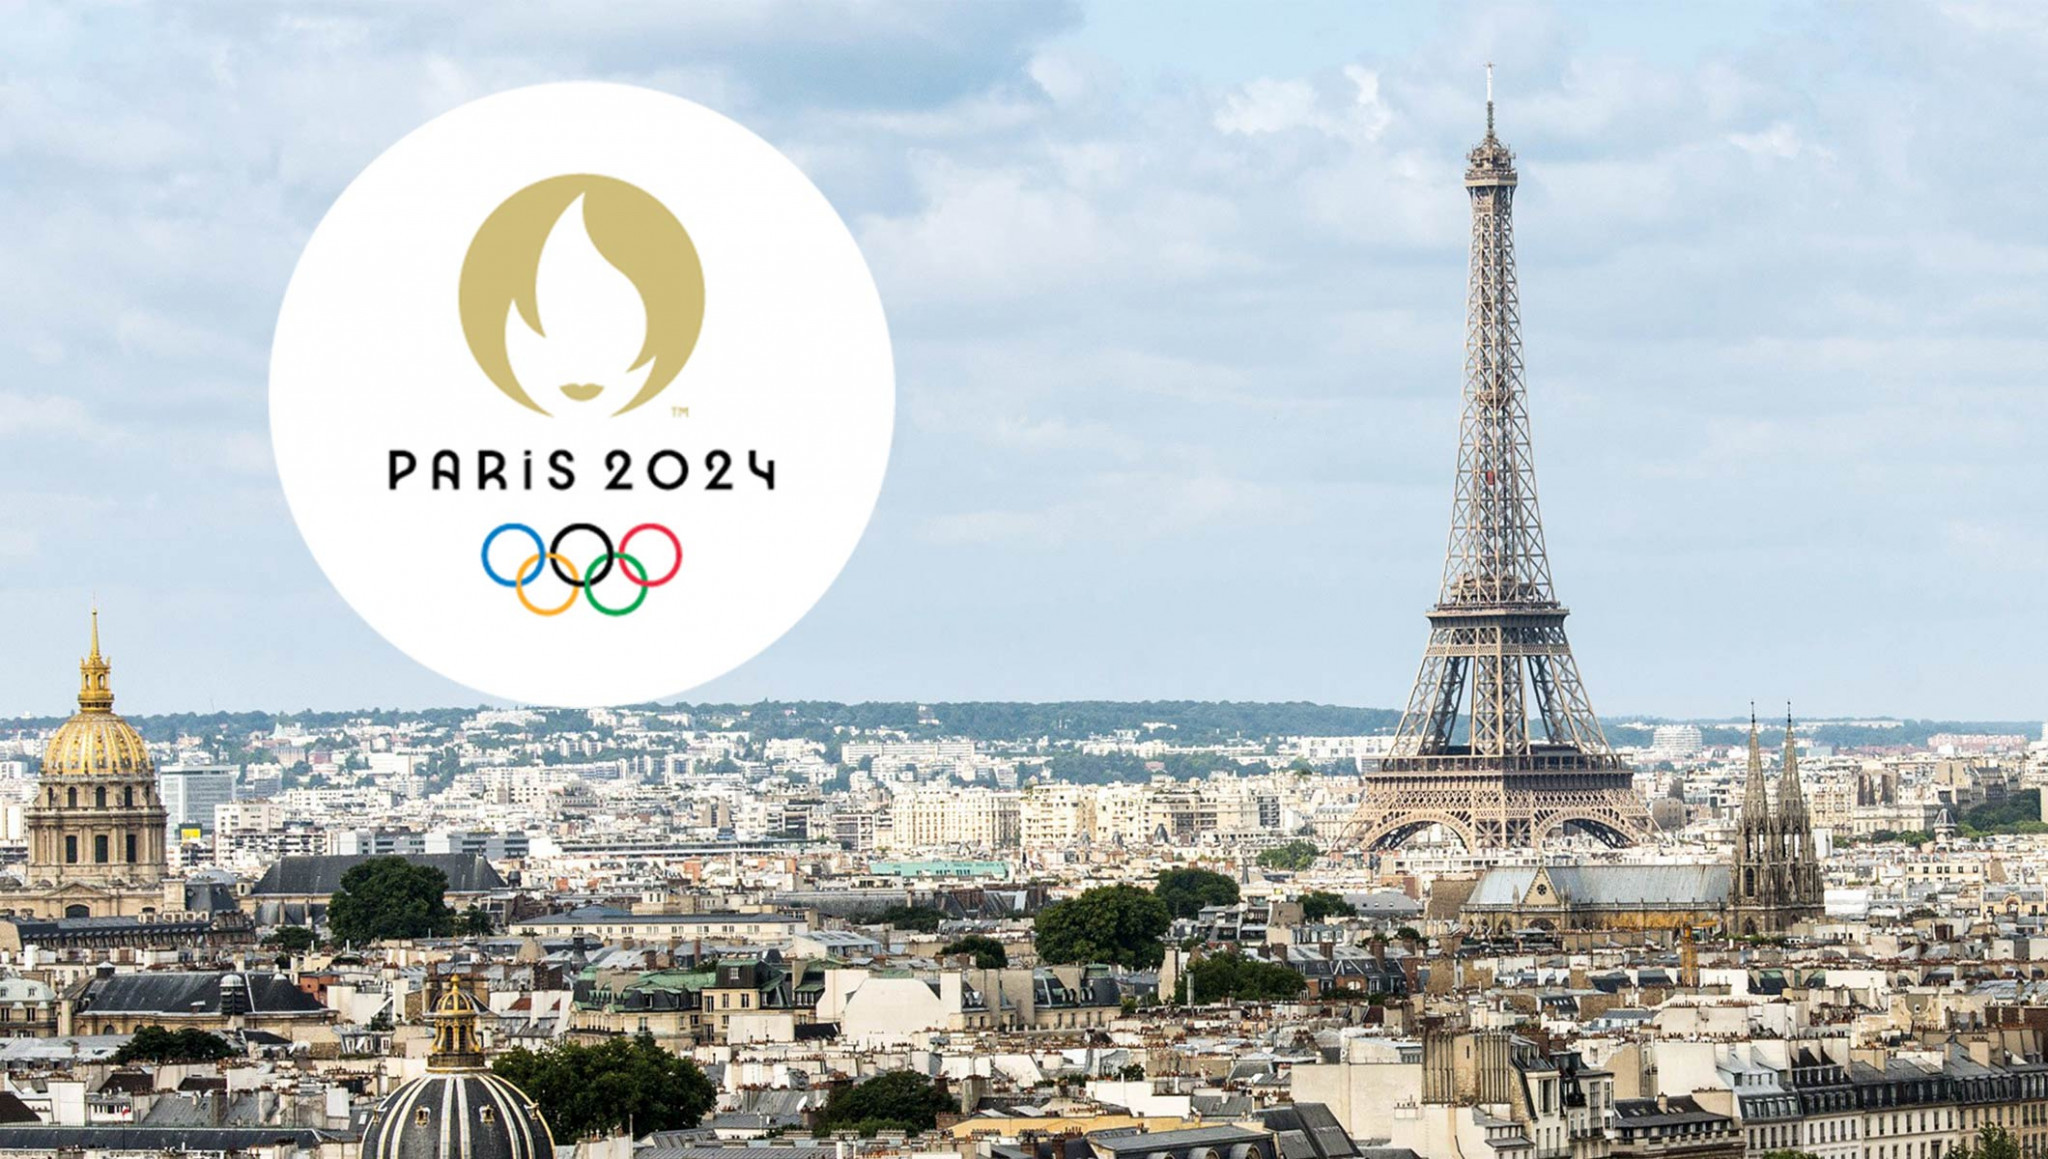 Le Coq Sportif launch campaign to win Paris 2024 contract, taking on Lacoste and Nike